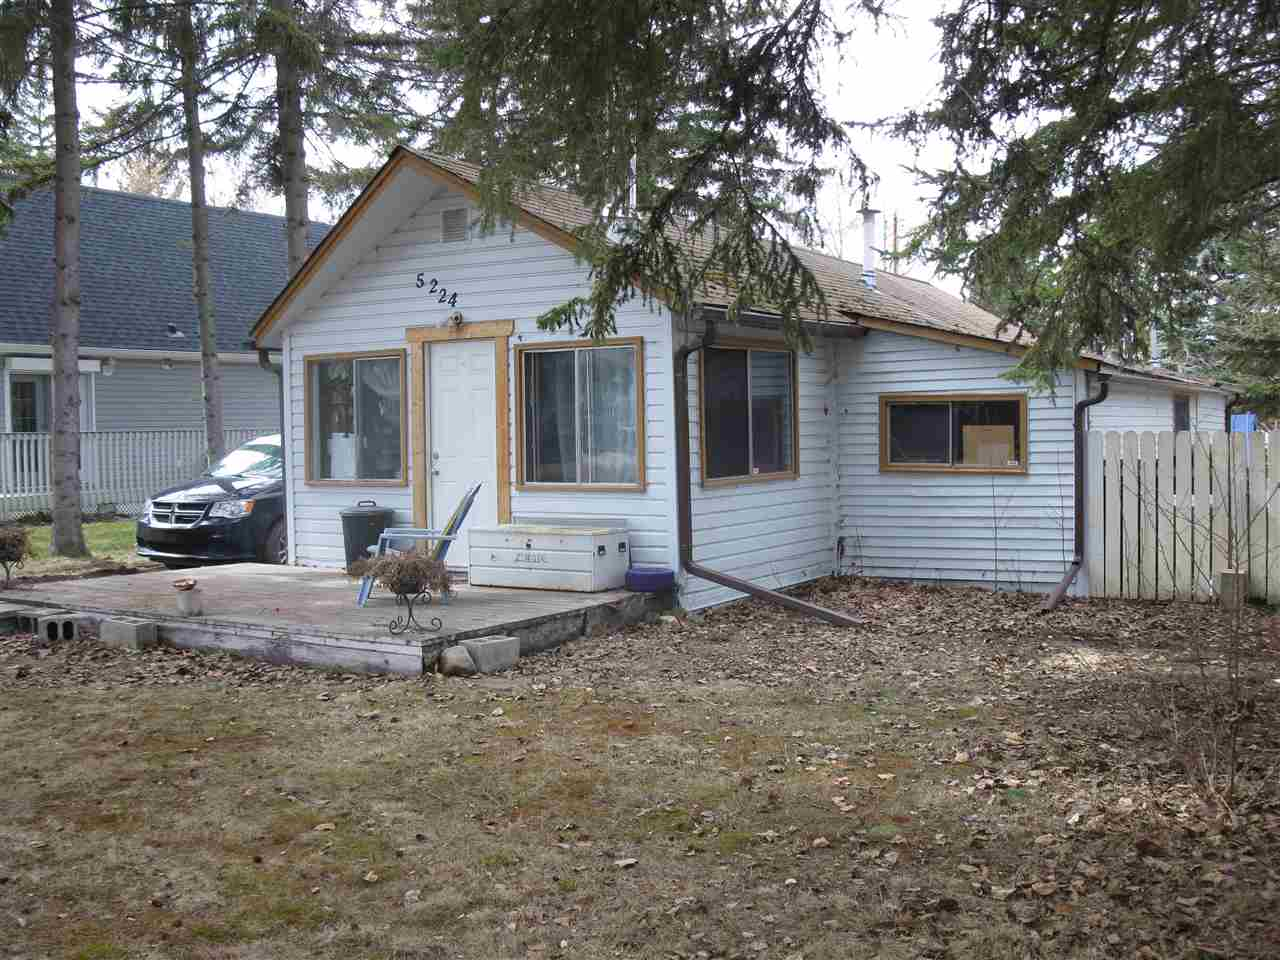 MLS® listing #E4152474 for sale located at 5224 48 Ave